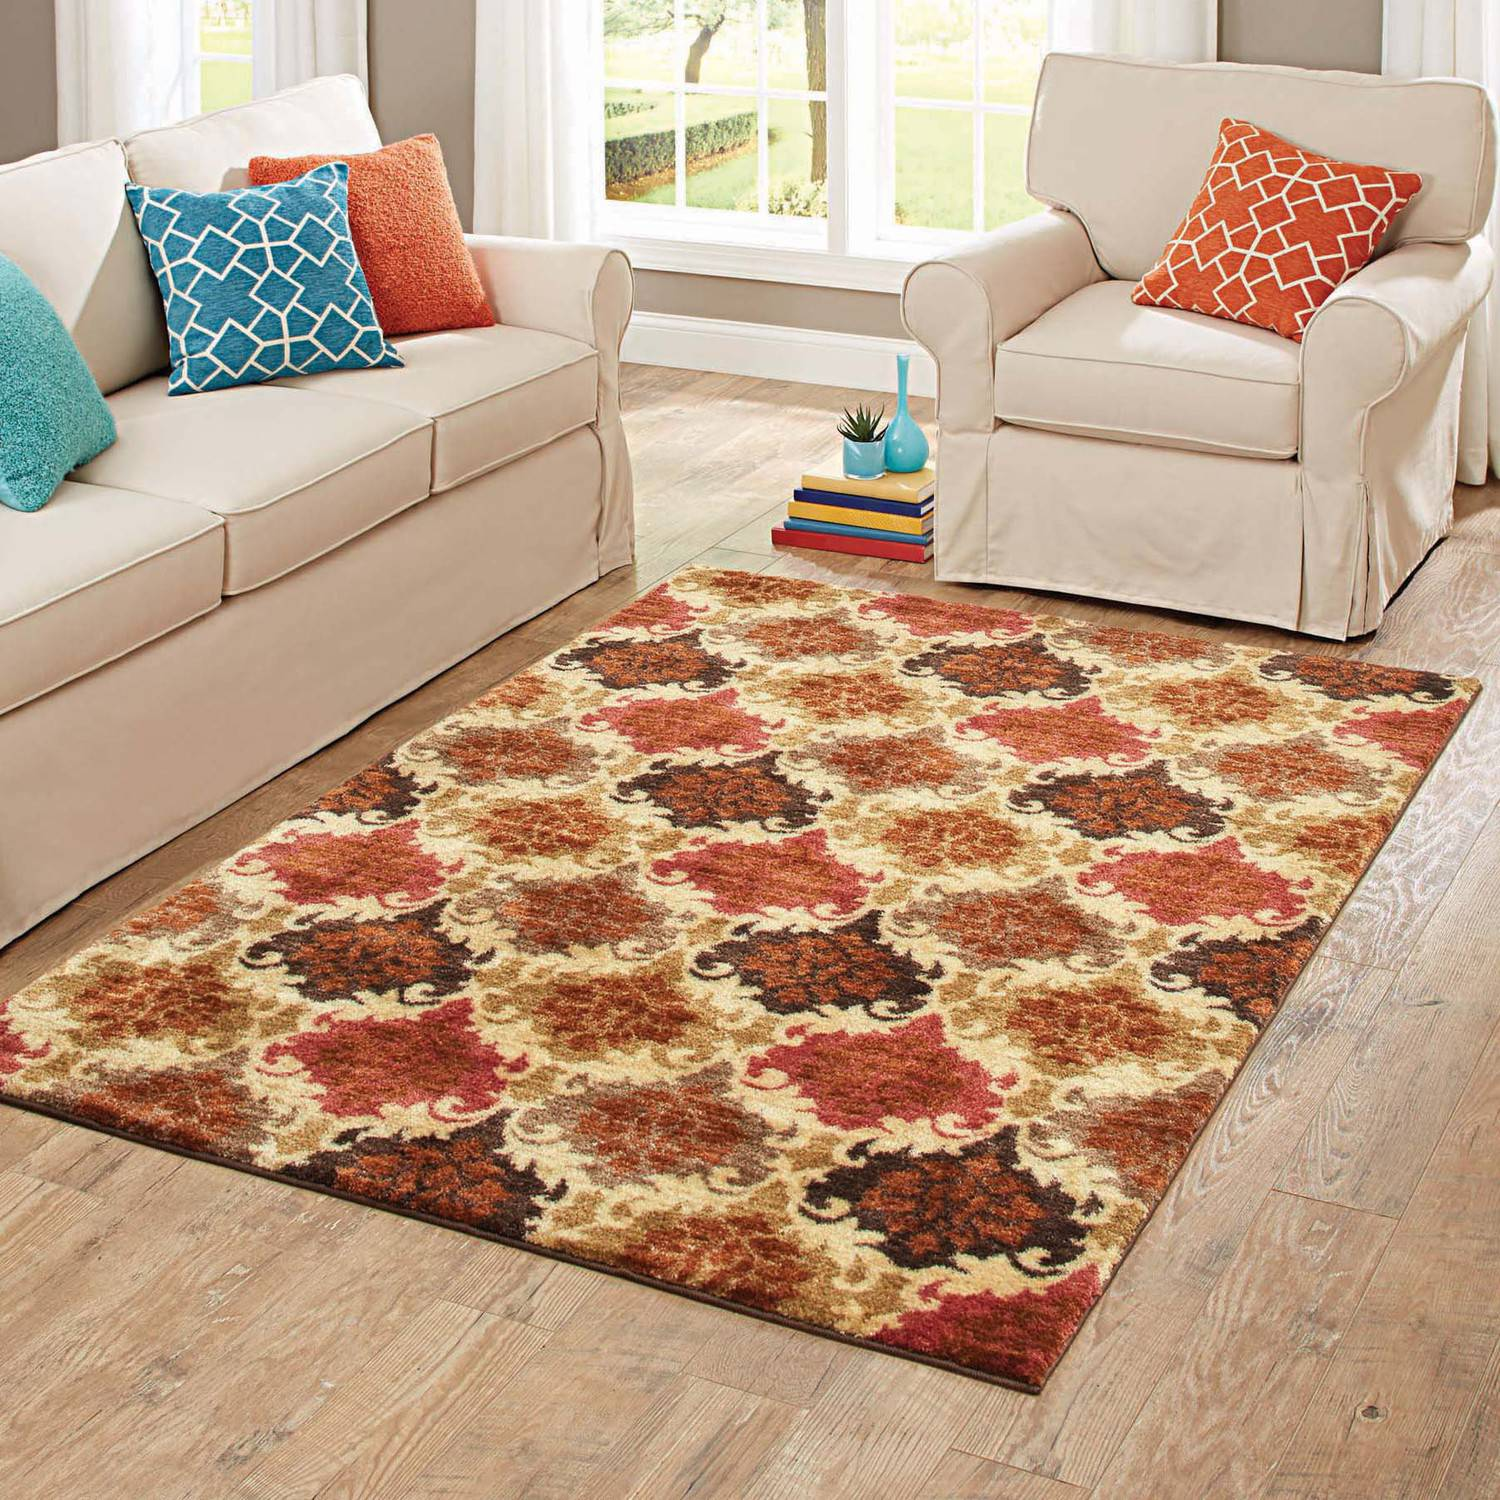 Better Homes And Gardens Spice Damask Nylon Area Rug 5 X